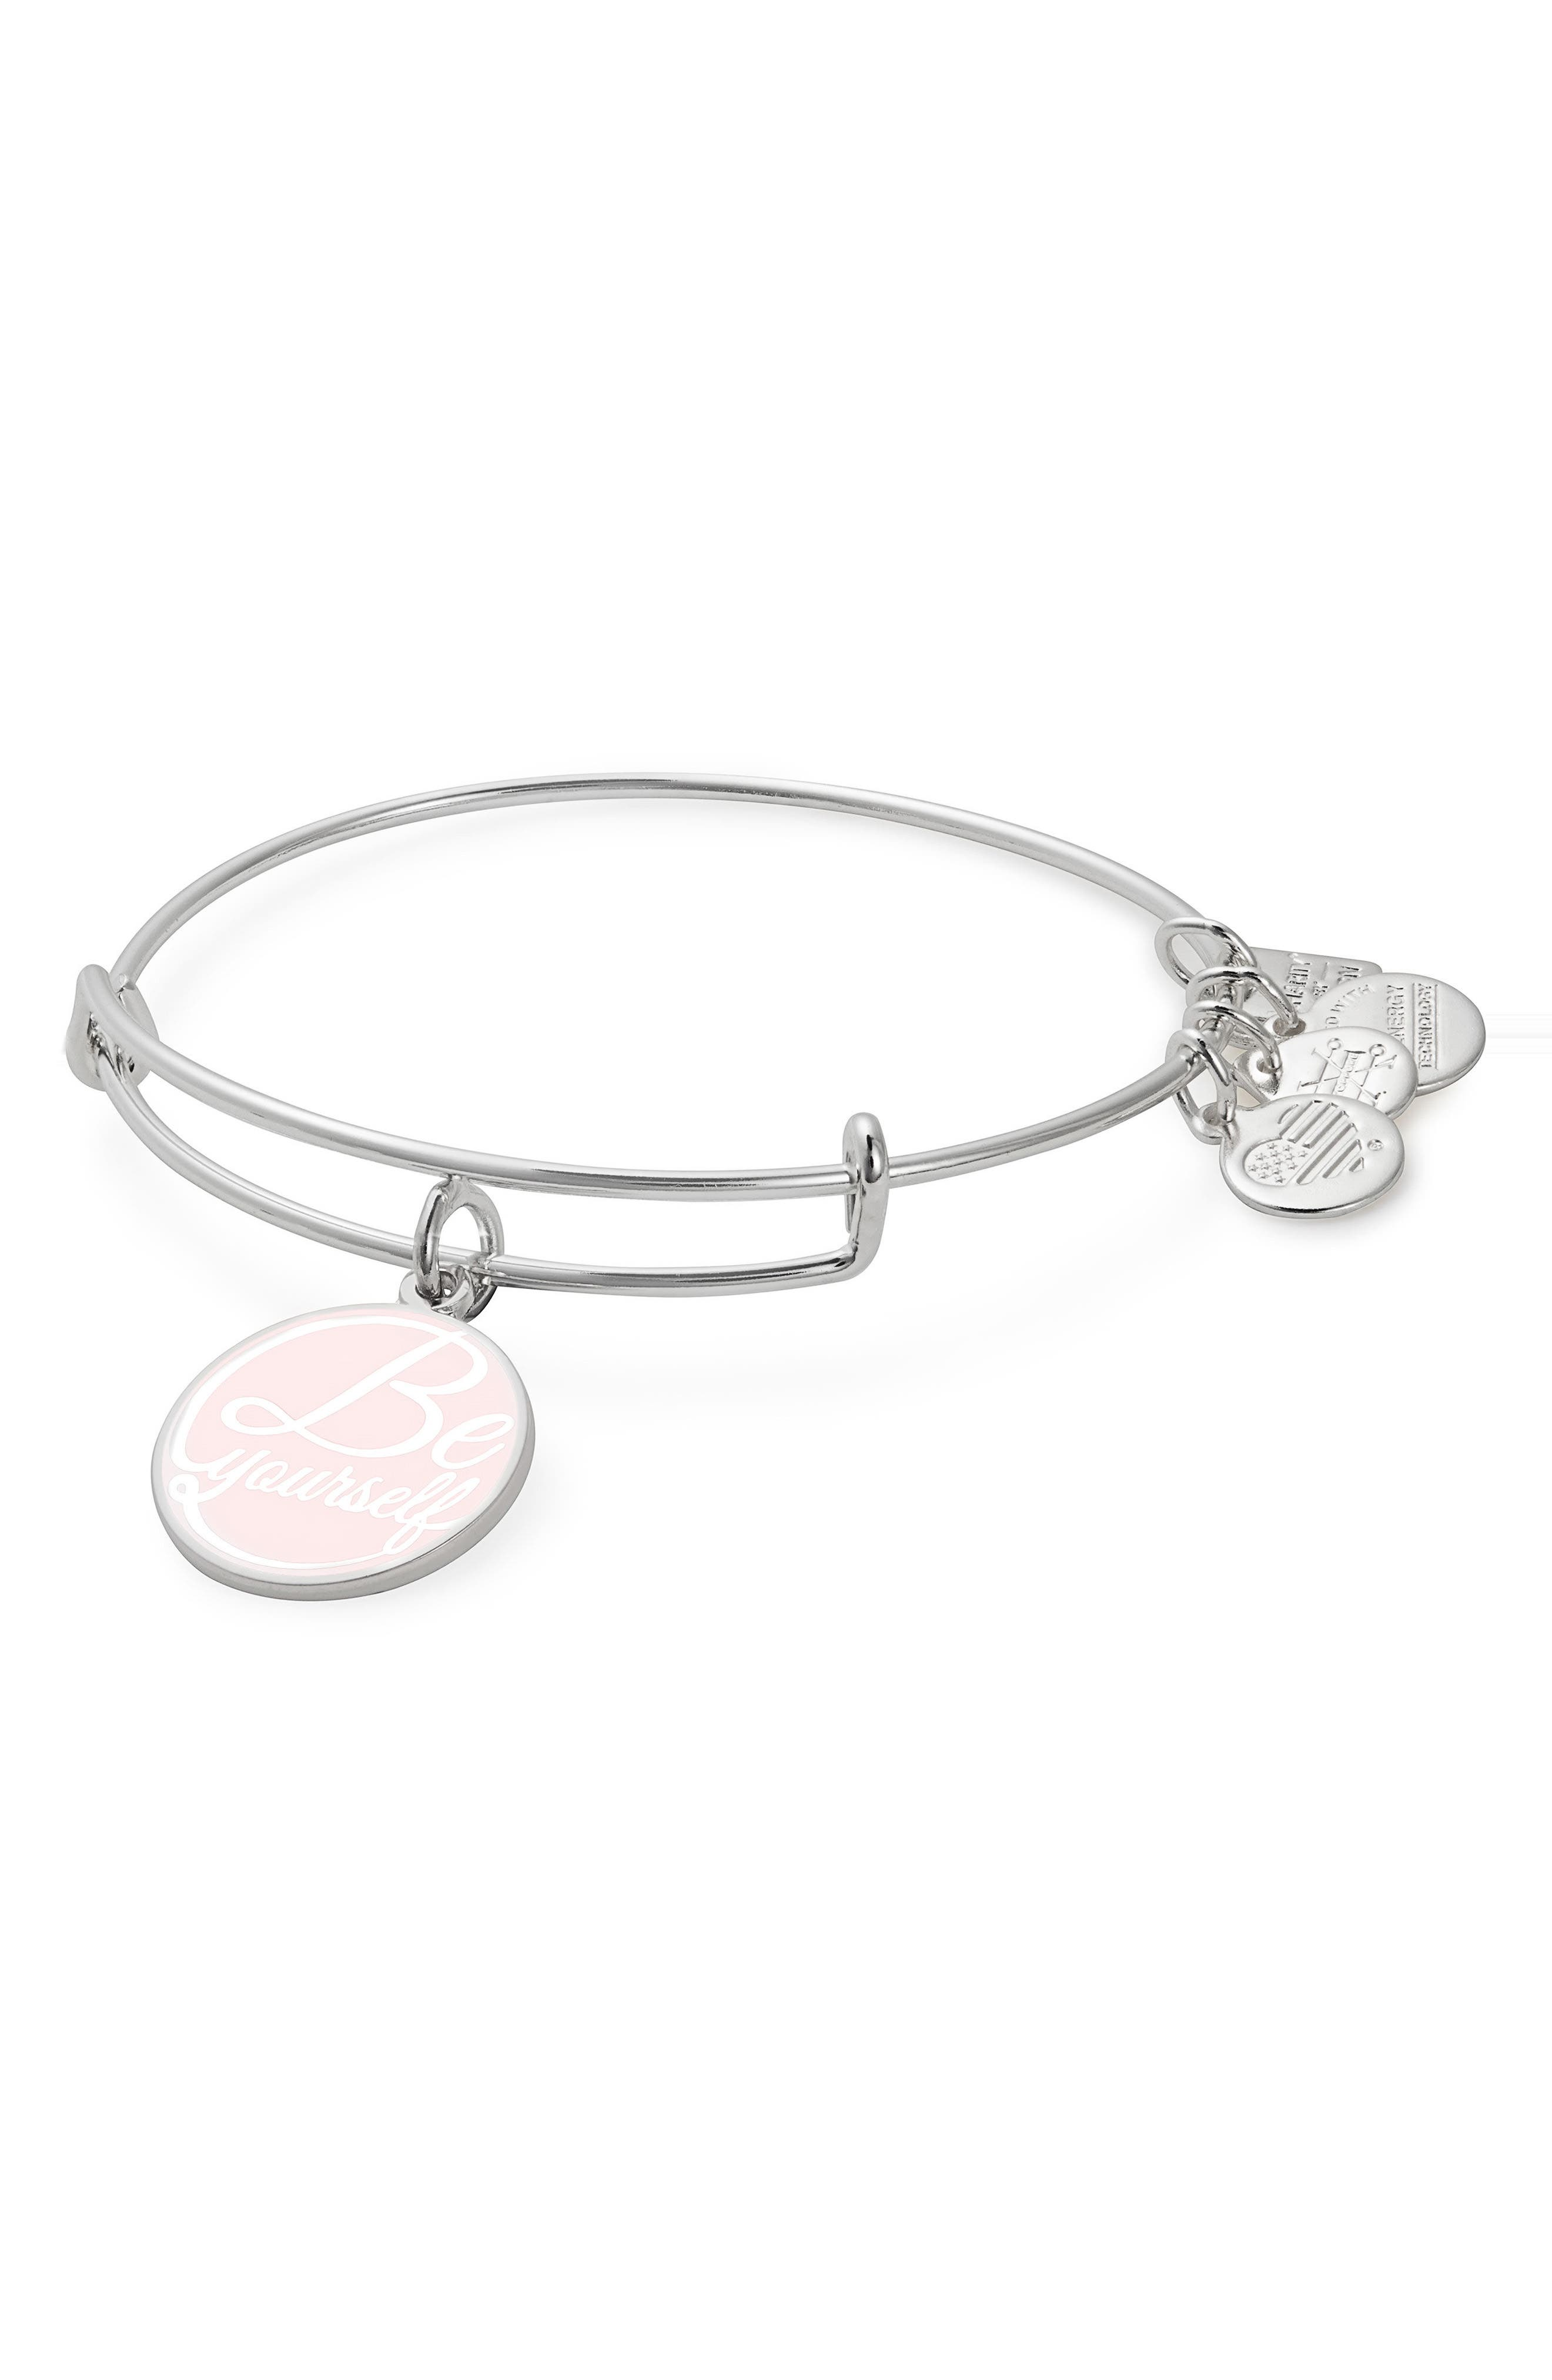 Be Yourself Bangle,                         Main,                         color, Silver